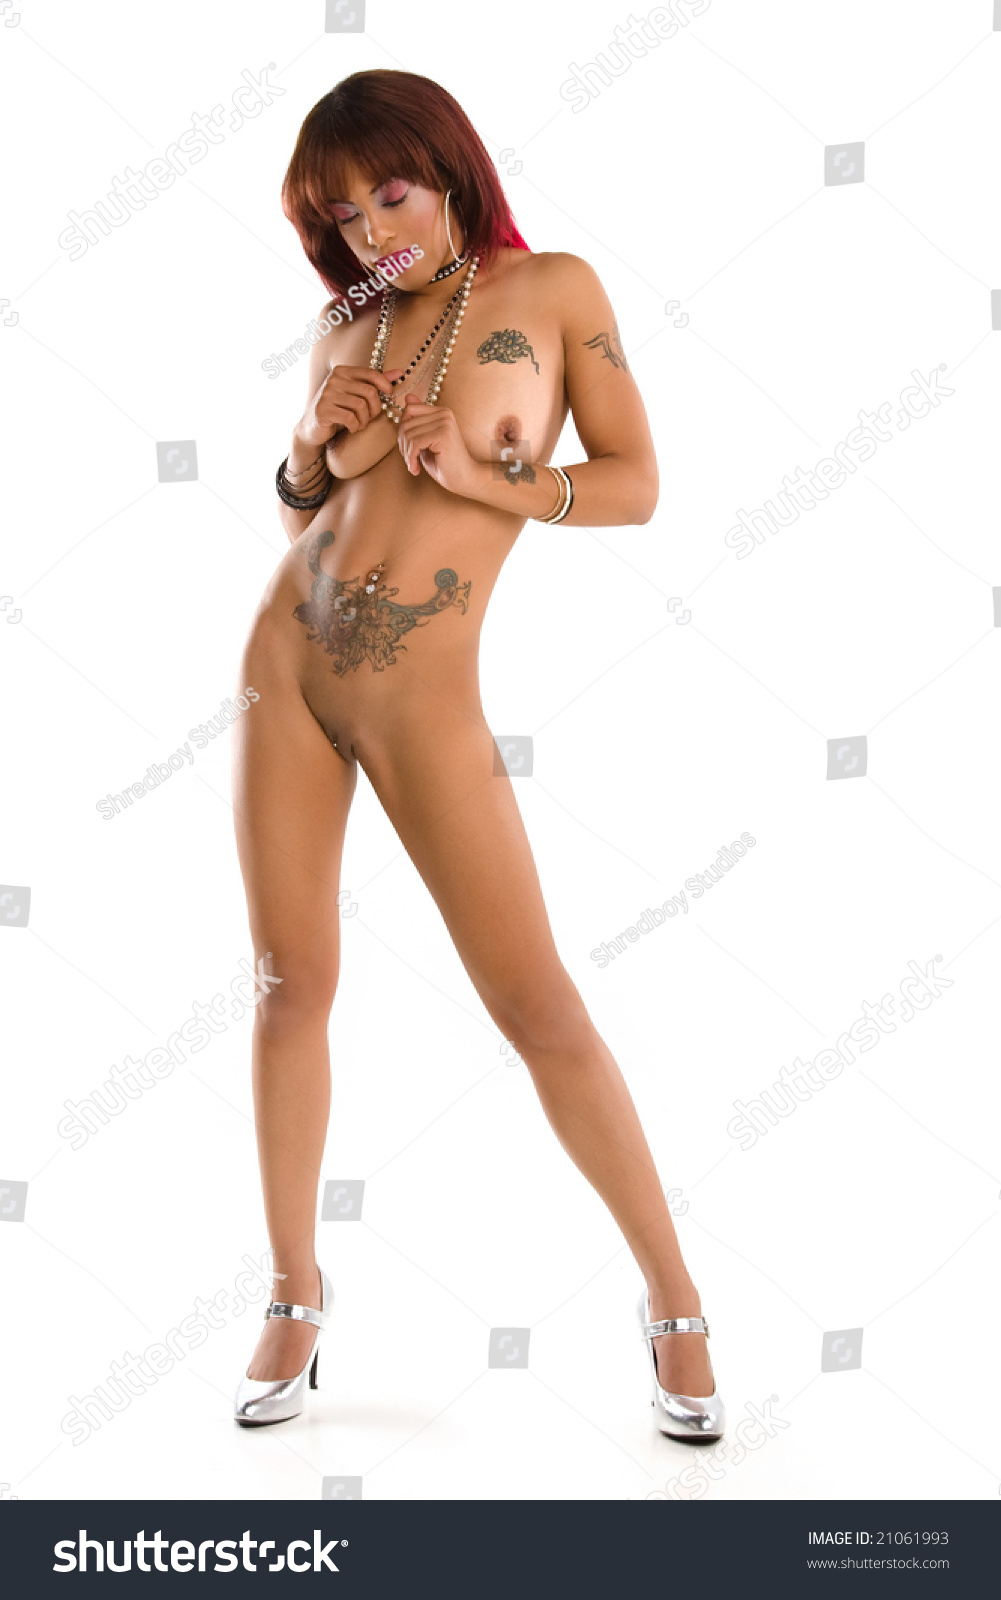 Sexy Nude Pinup Girl Standing White Stock Photo 21061993 -3770